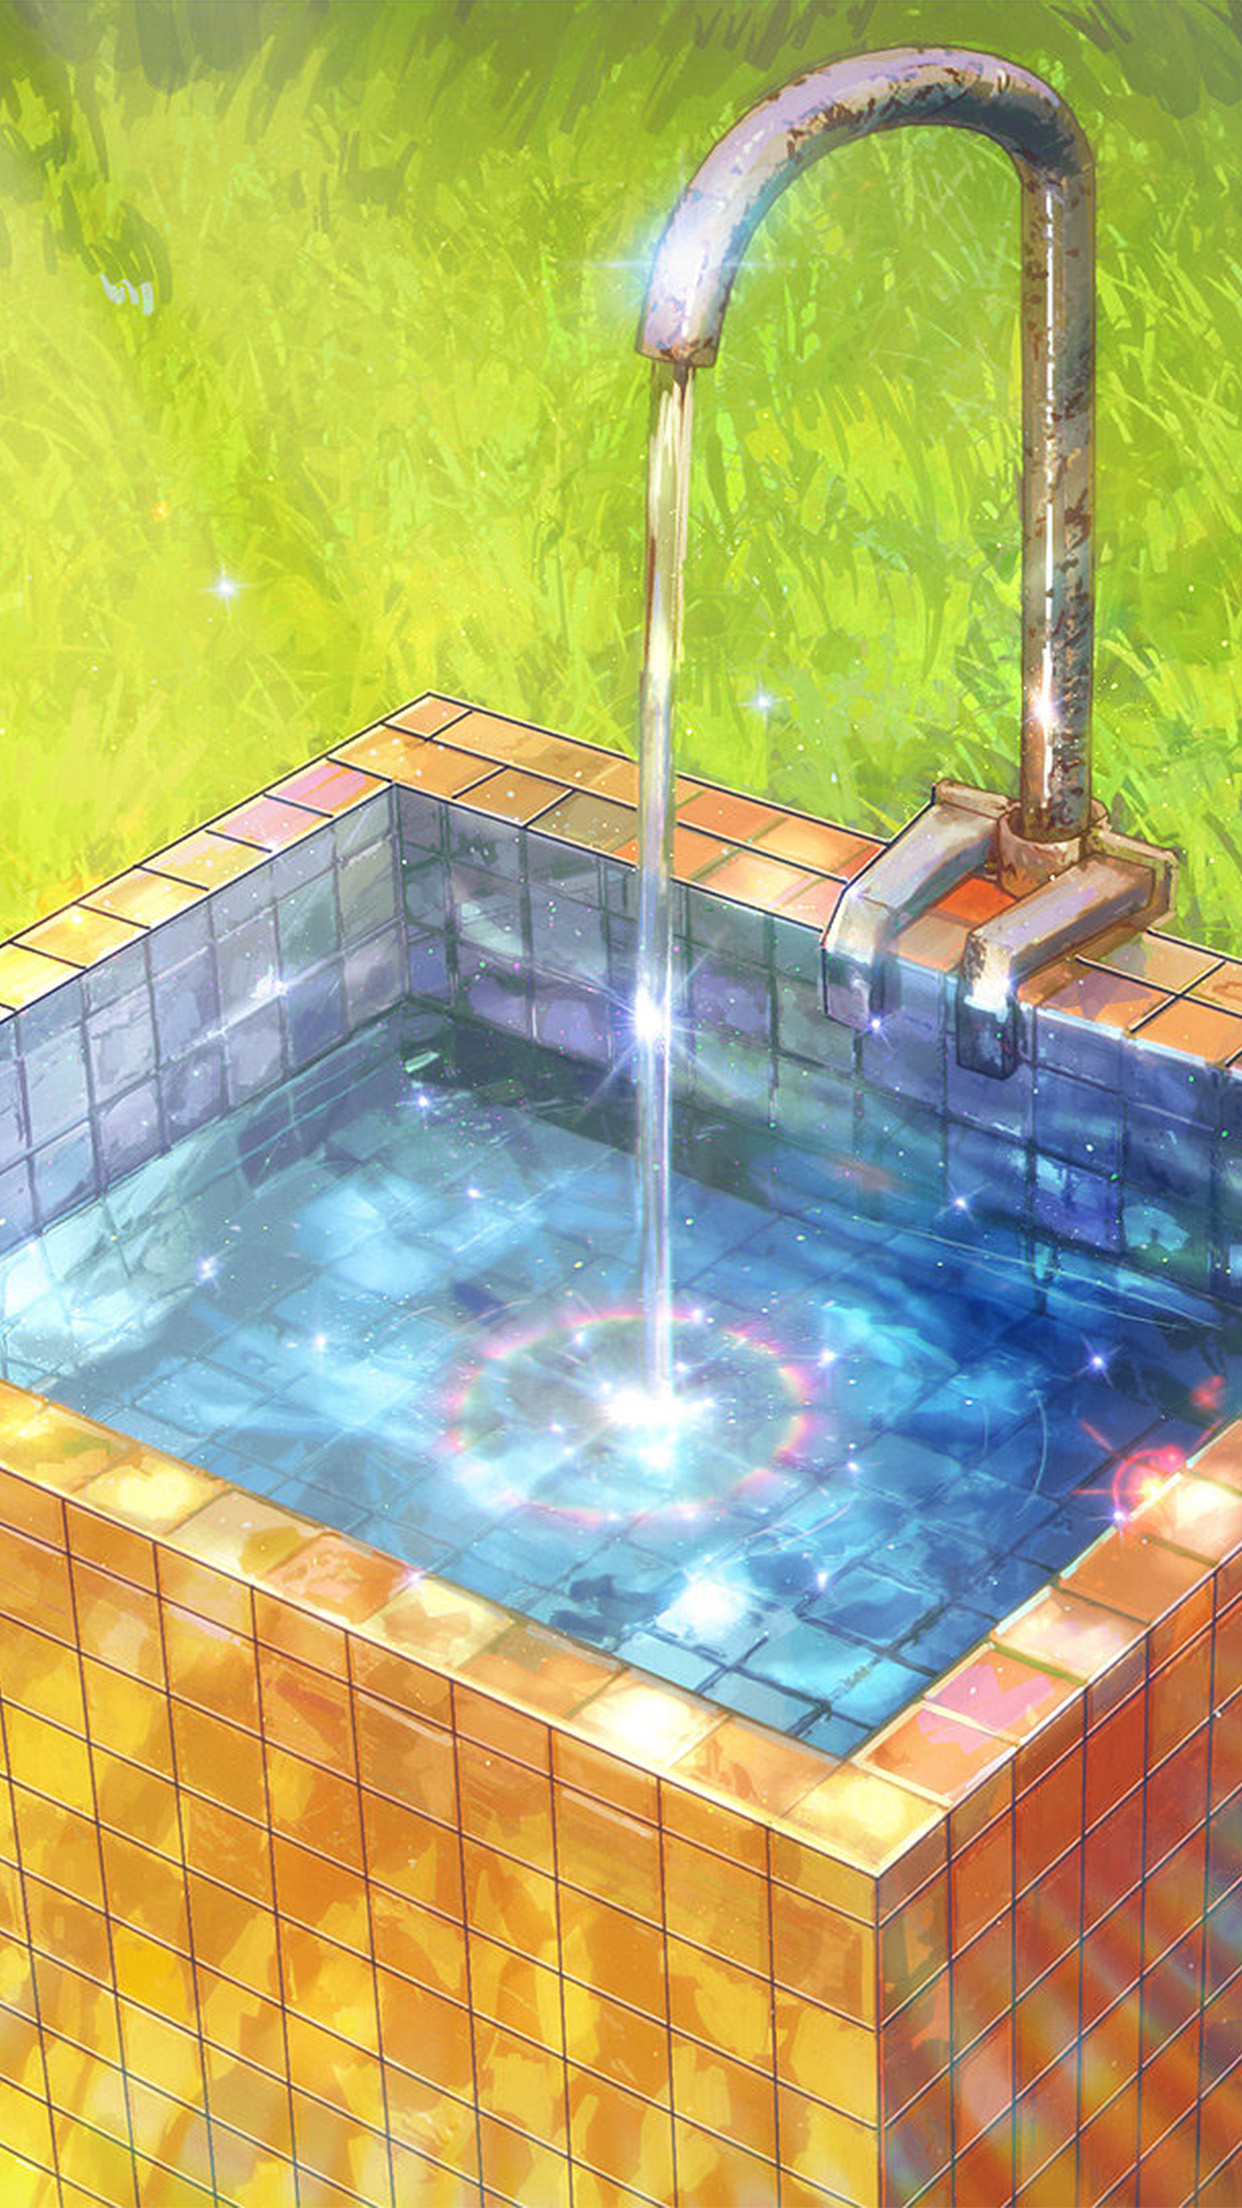 Water Anime Paint Color Illustration Art Arseniy Chebynkin Android wallpaper